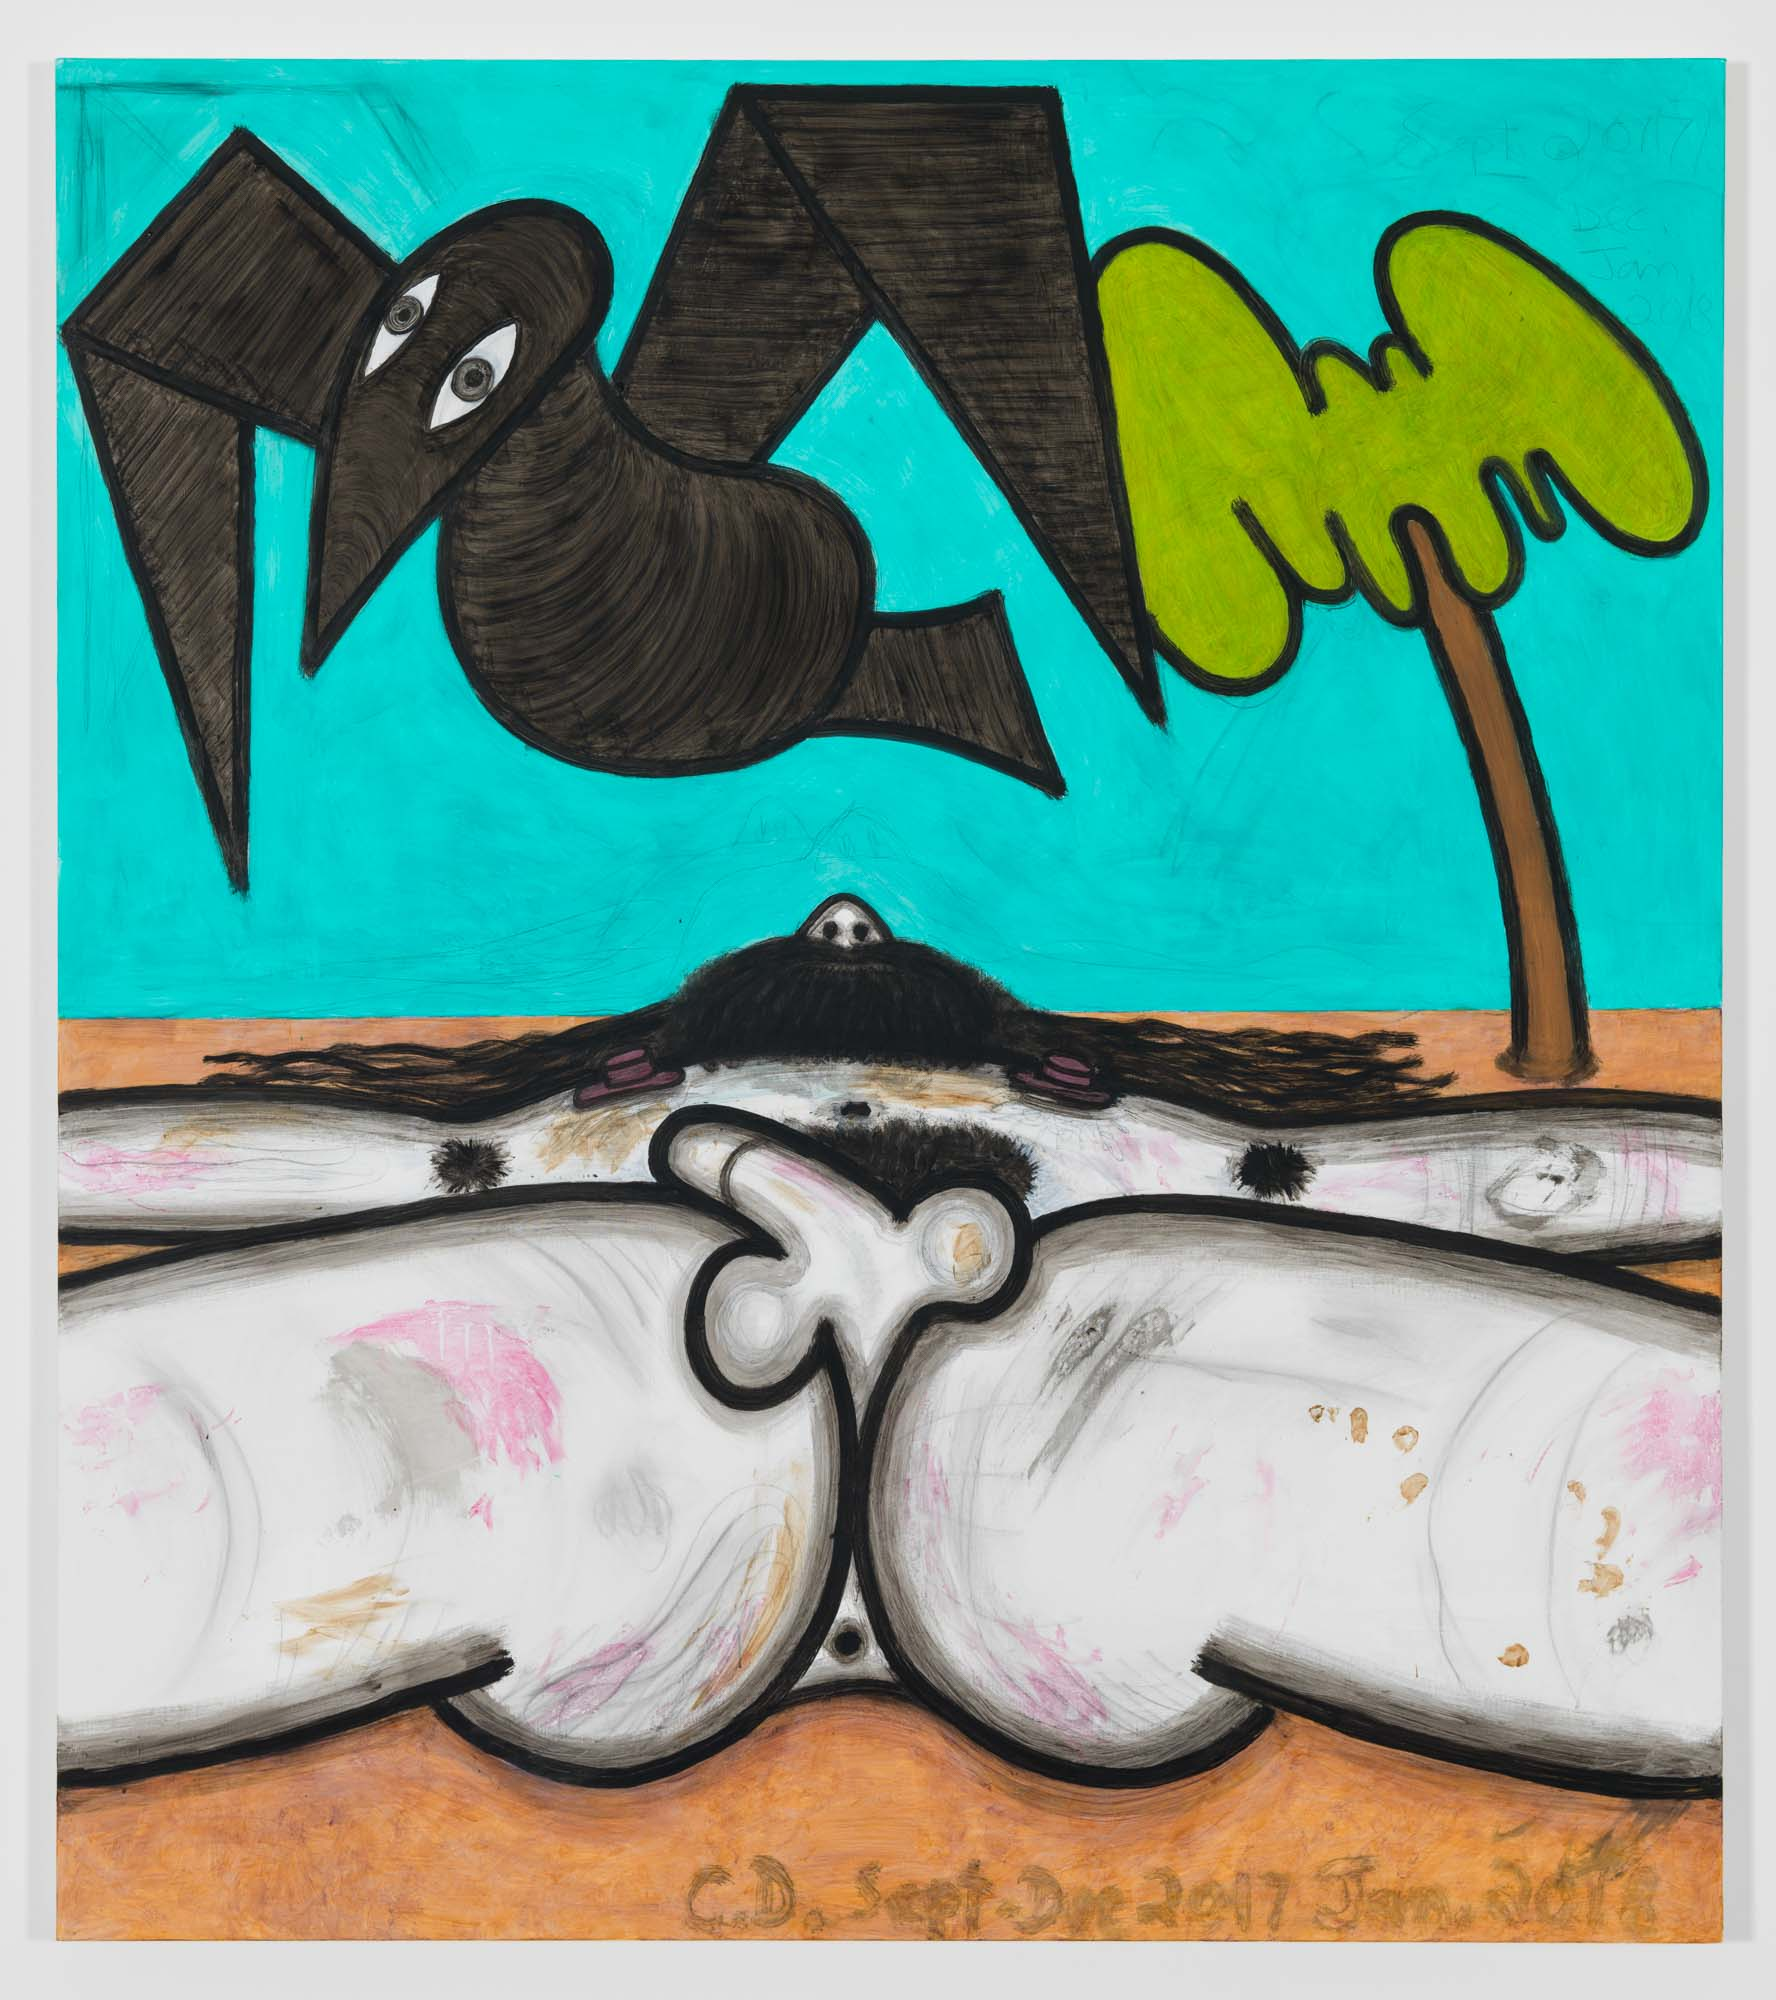 Carroll Dunham Left for Dead (3), 2017-2018. © Carroll Dunham. Courtesy the artist and Gladstone Gallery, New York and Brussels